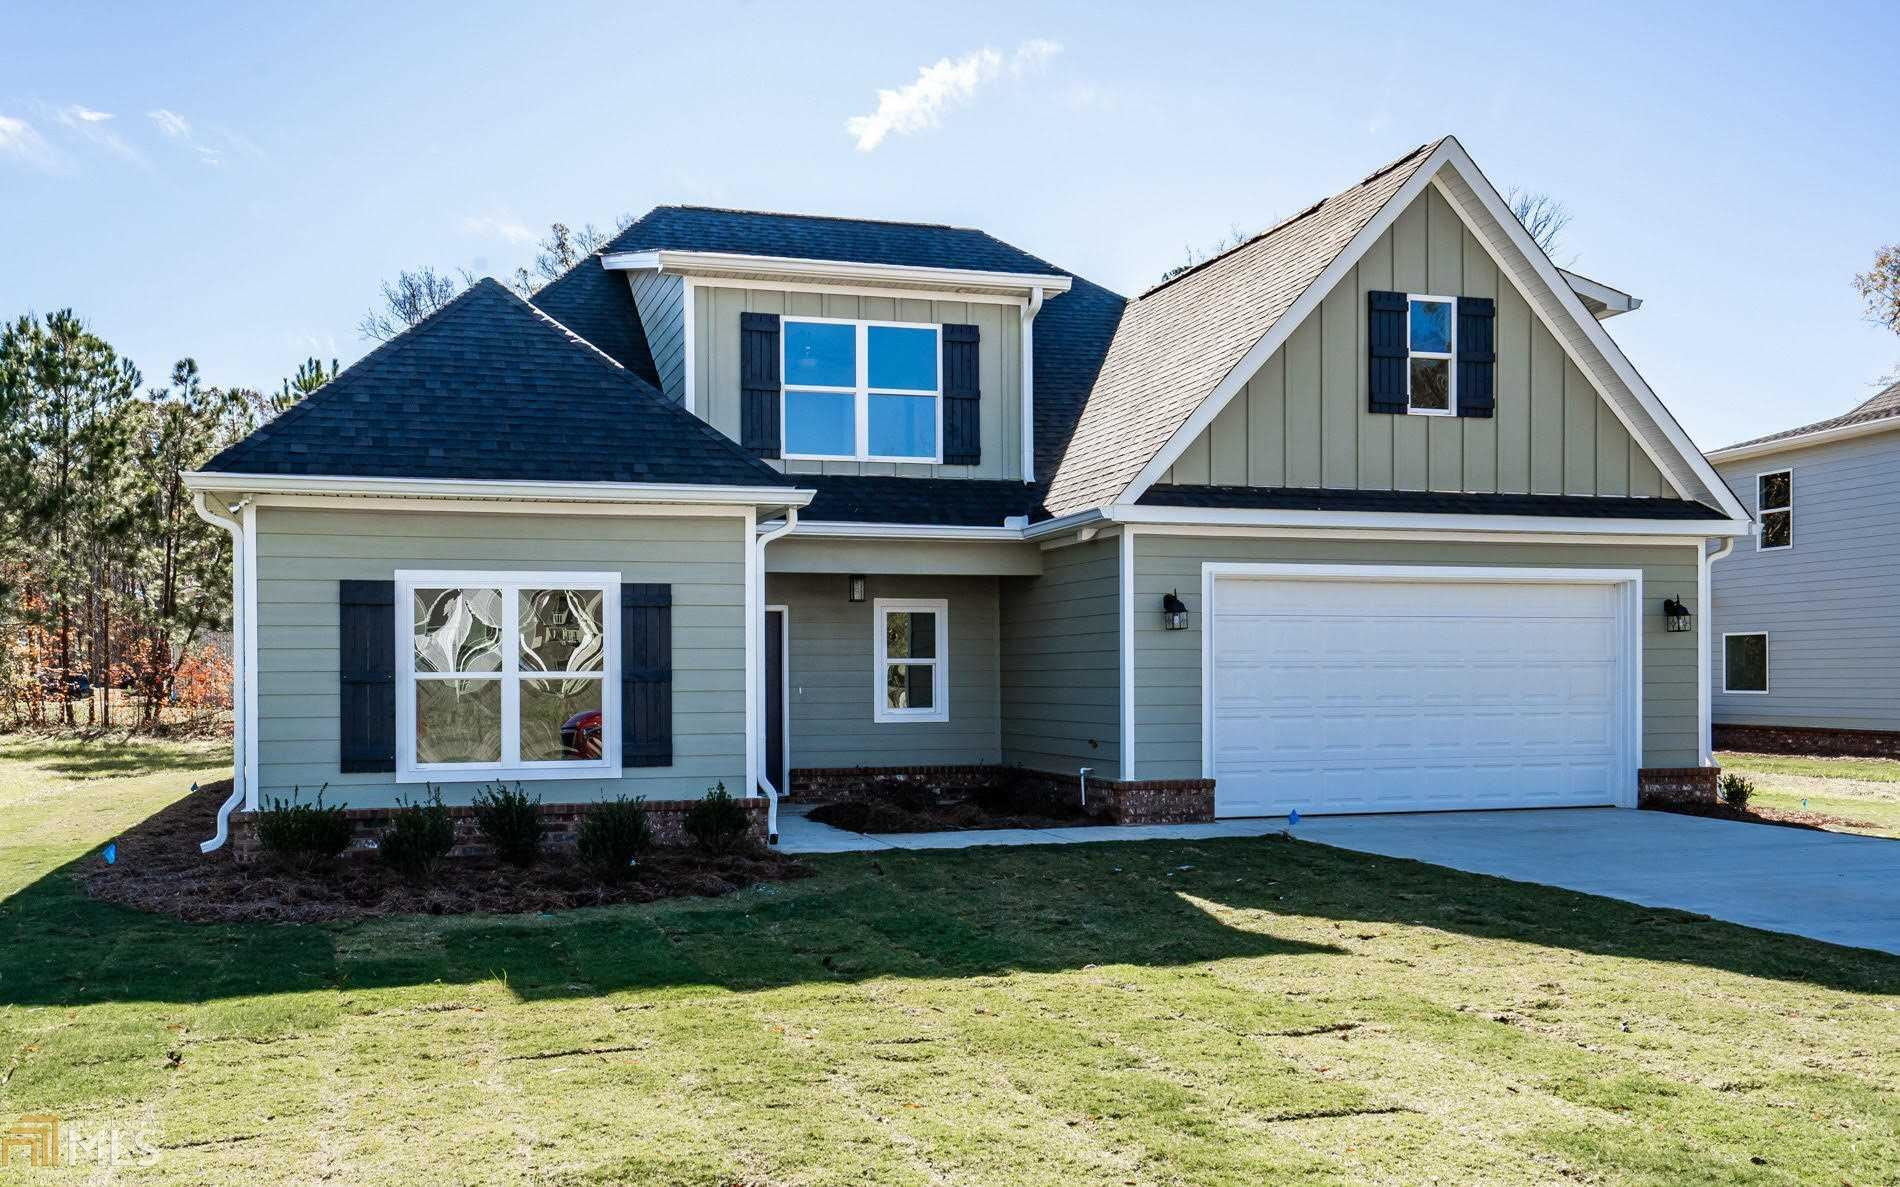 172 Piedmont Lake Dr, Gray, GA 31032 - MLS#: 8836793